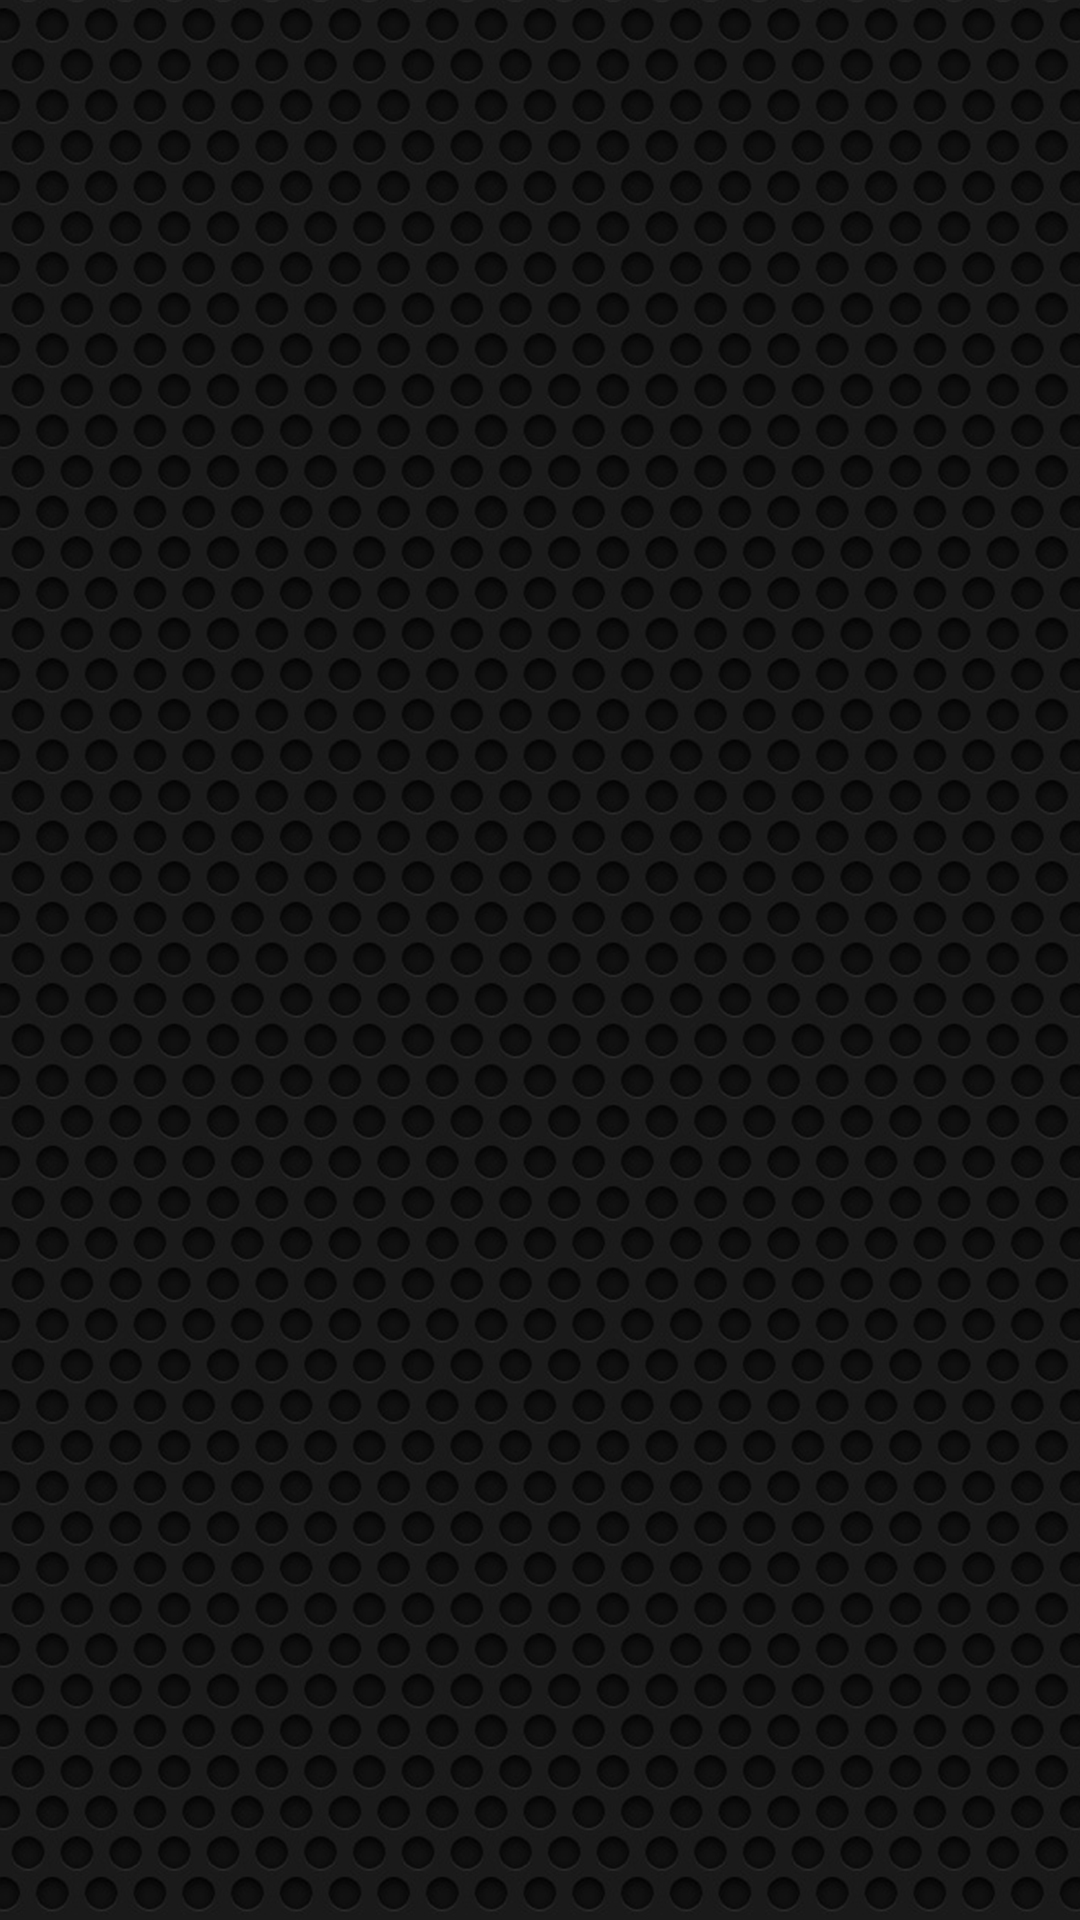 2MB. Dark Metal Grid Cell Phone Background